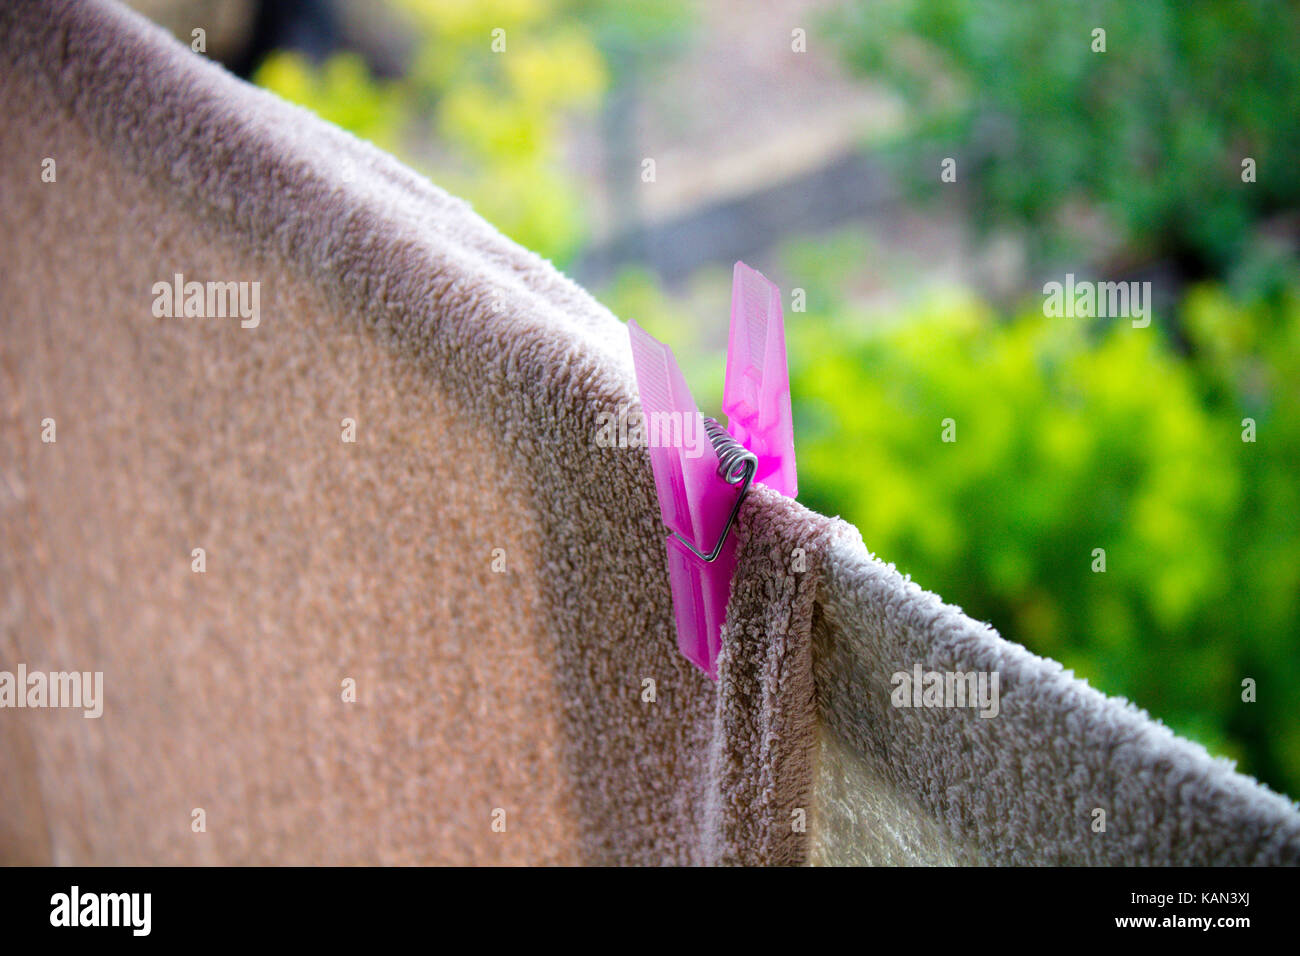 housework wash and hung of the clothes eith clothespin - Stock Image